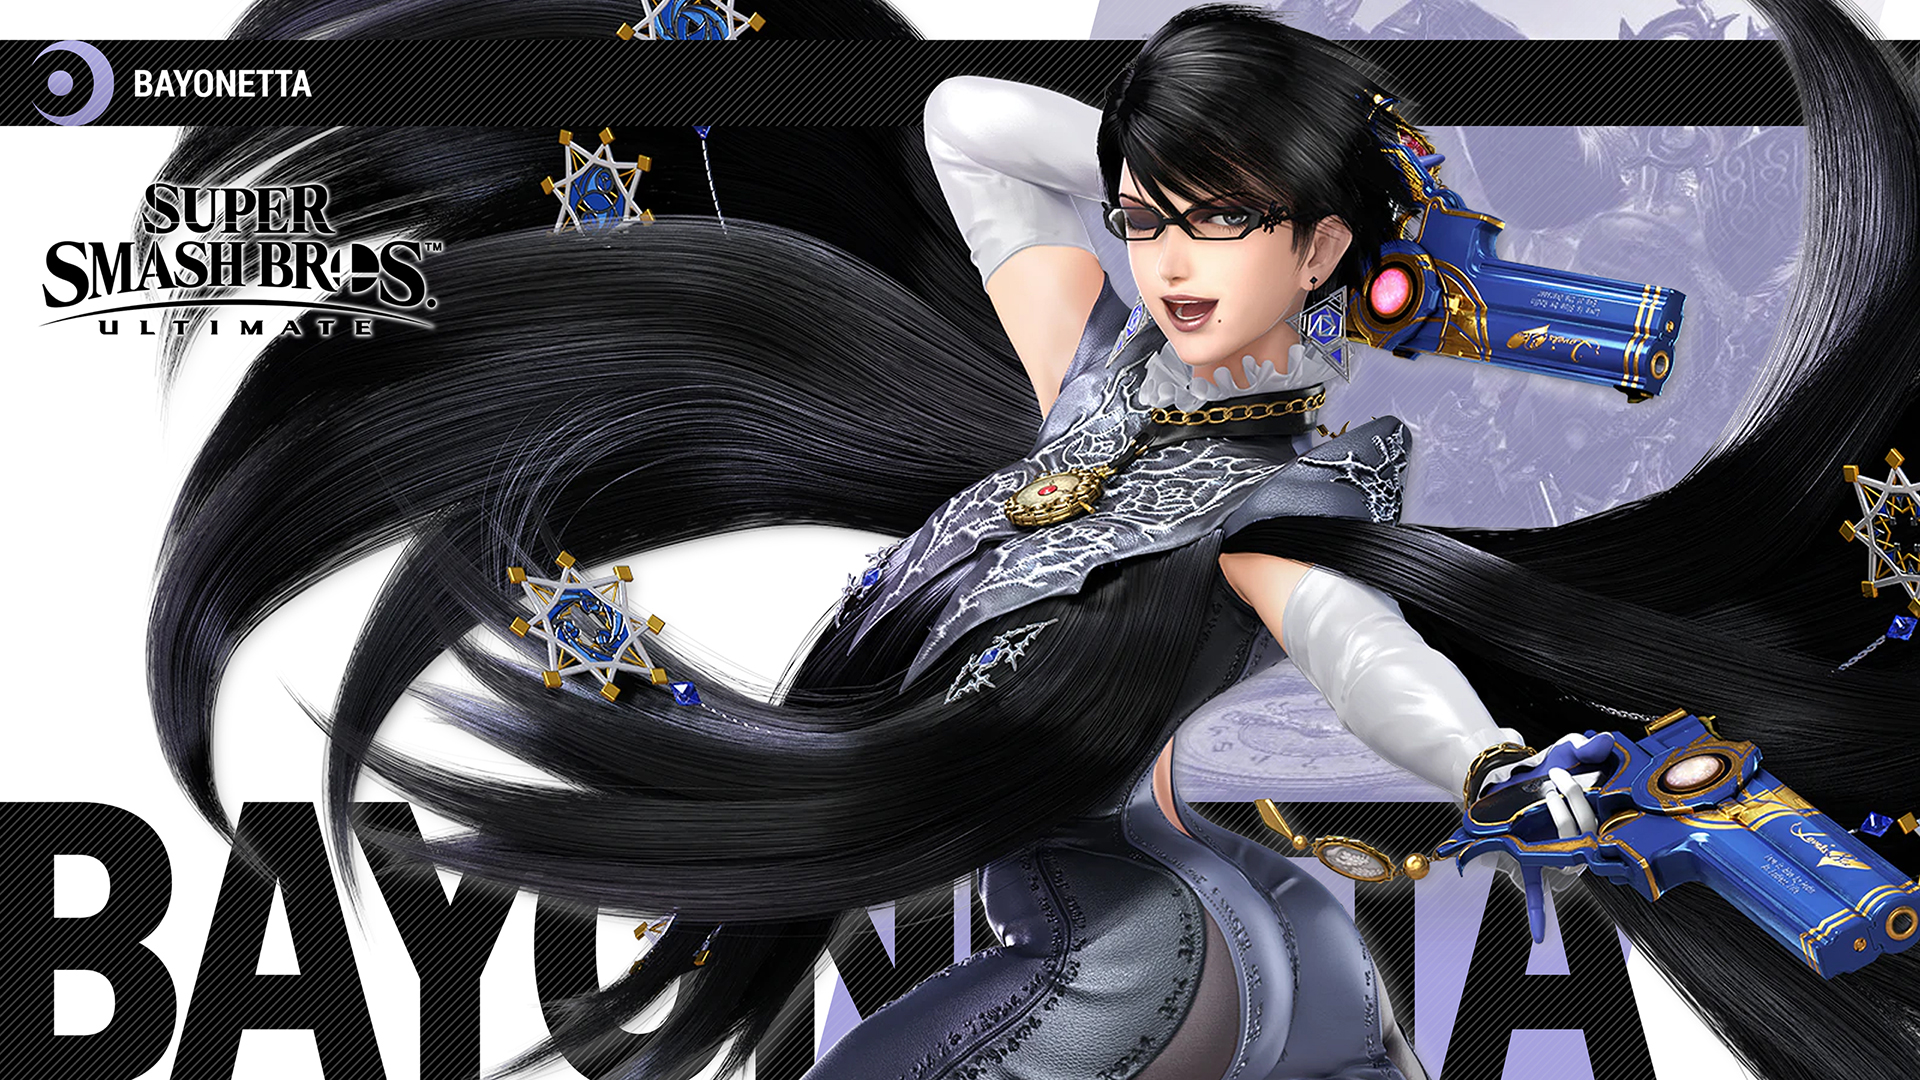 Super Smash Bros Ultimate Bayonetta Wallpapers Cat With Monocle